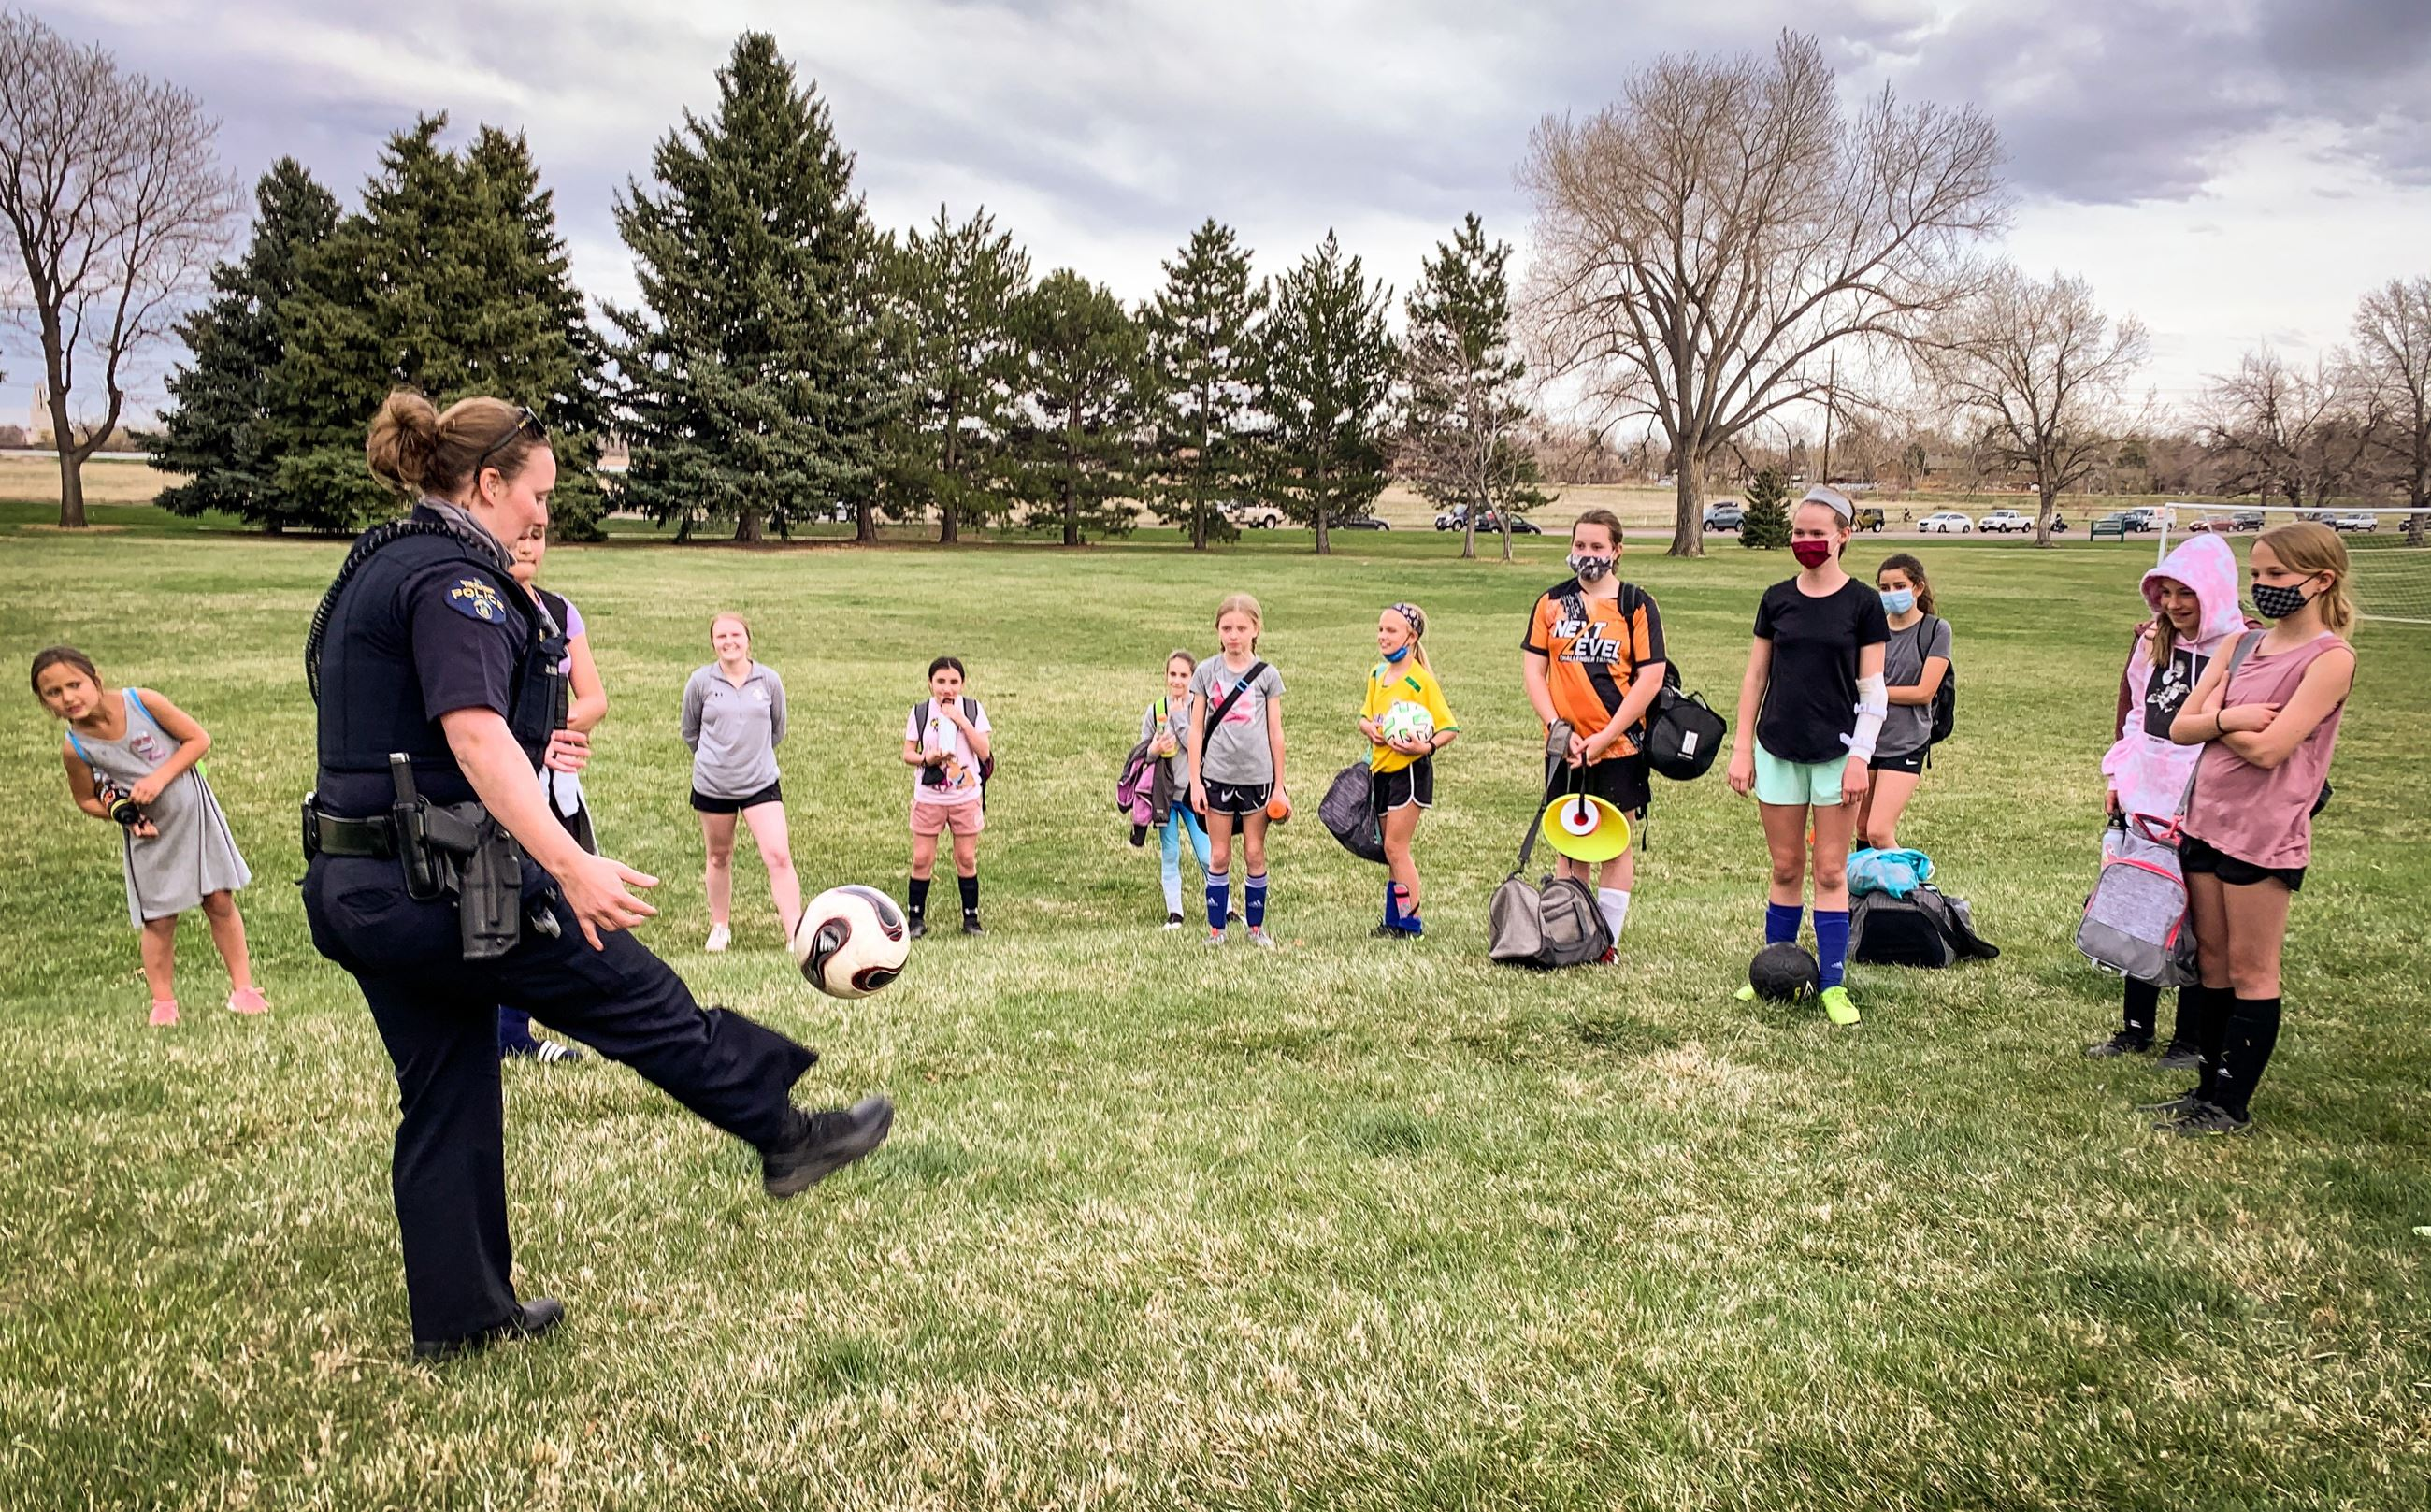 Officer  Hooper kicks it with Wheat Ridge Soccer Team